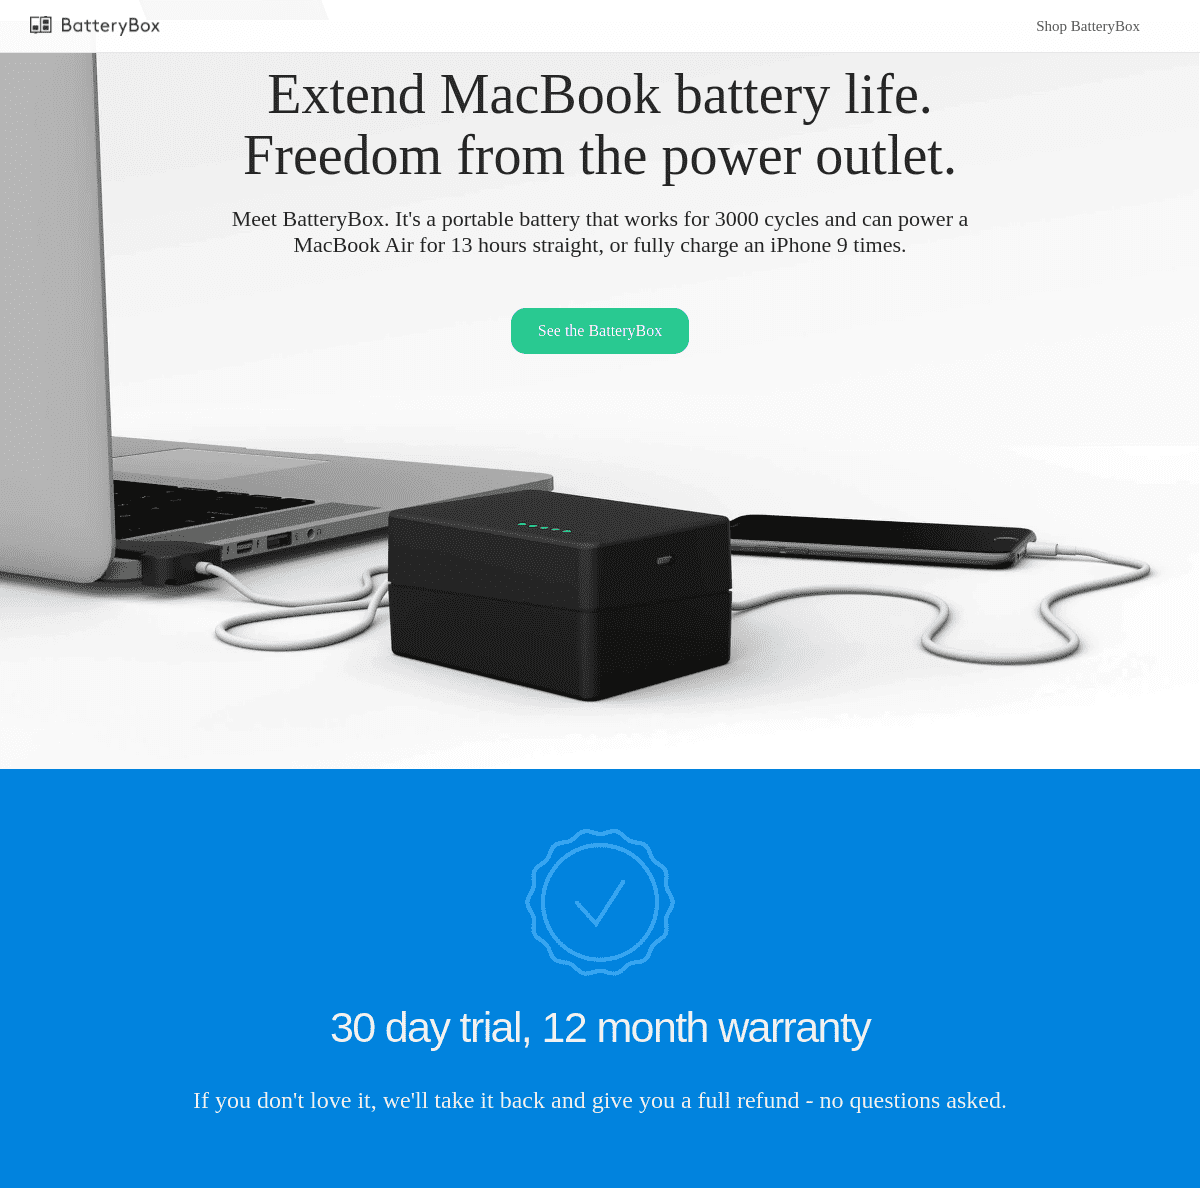 BatteryBox • BatteryBox Slim - Sleek and powerful external battery for any laptop